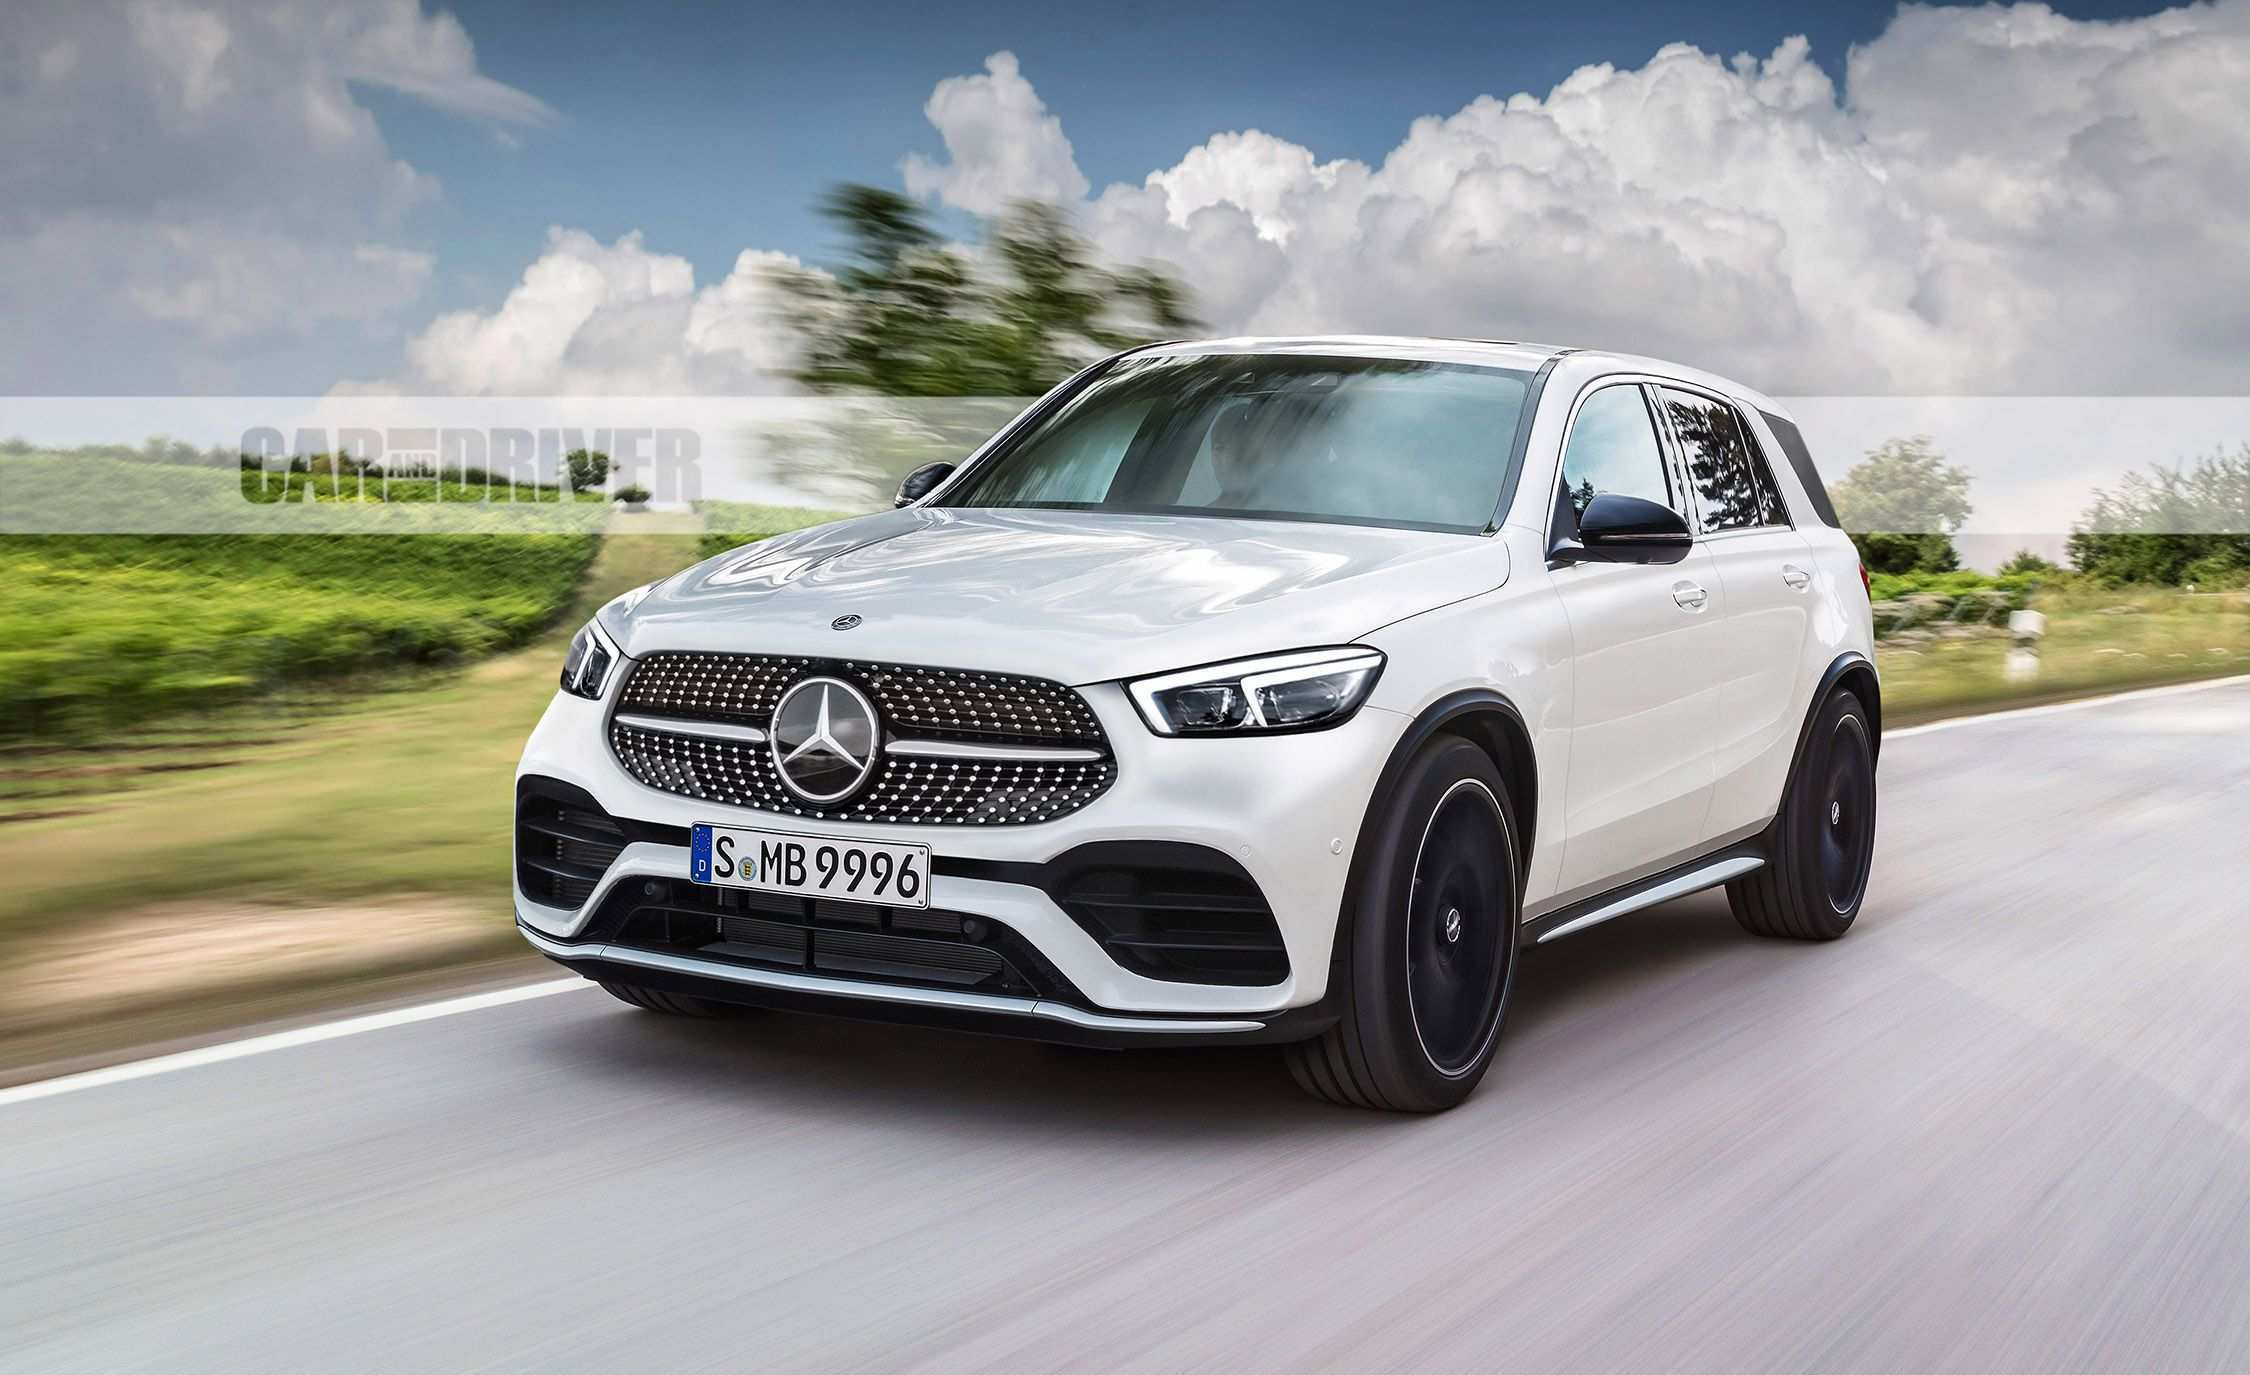 87 All New Mercedes 2019 Gle Engine Engine with Mercedes 2019 Gle Engine